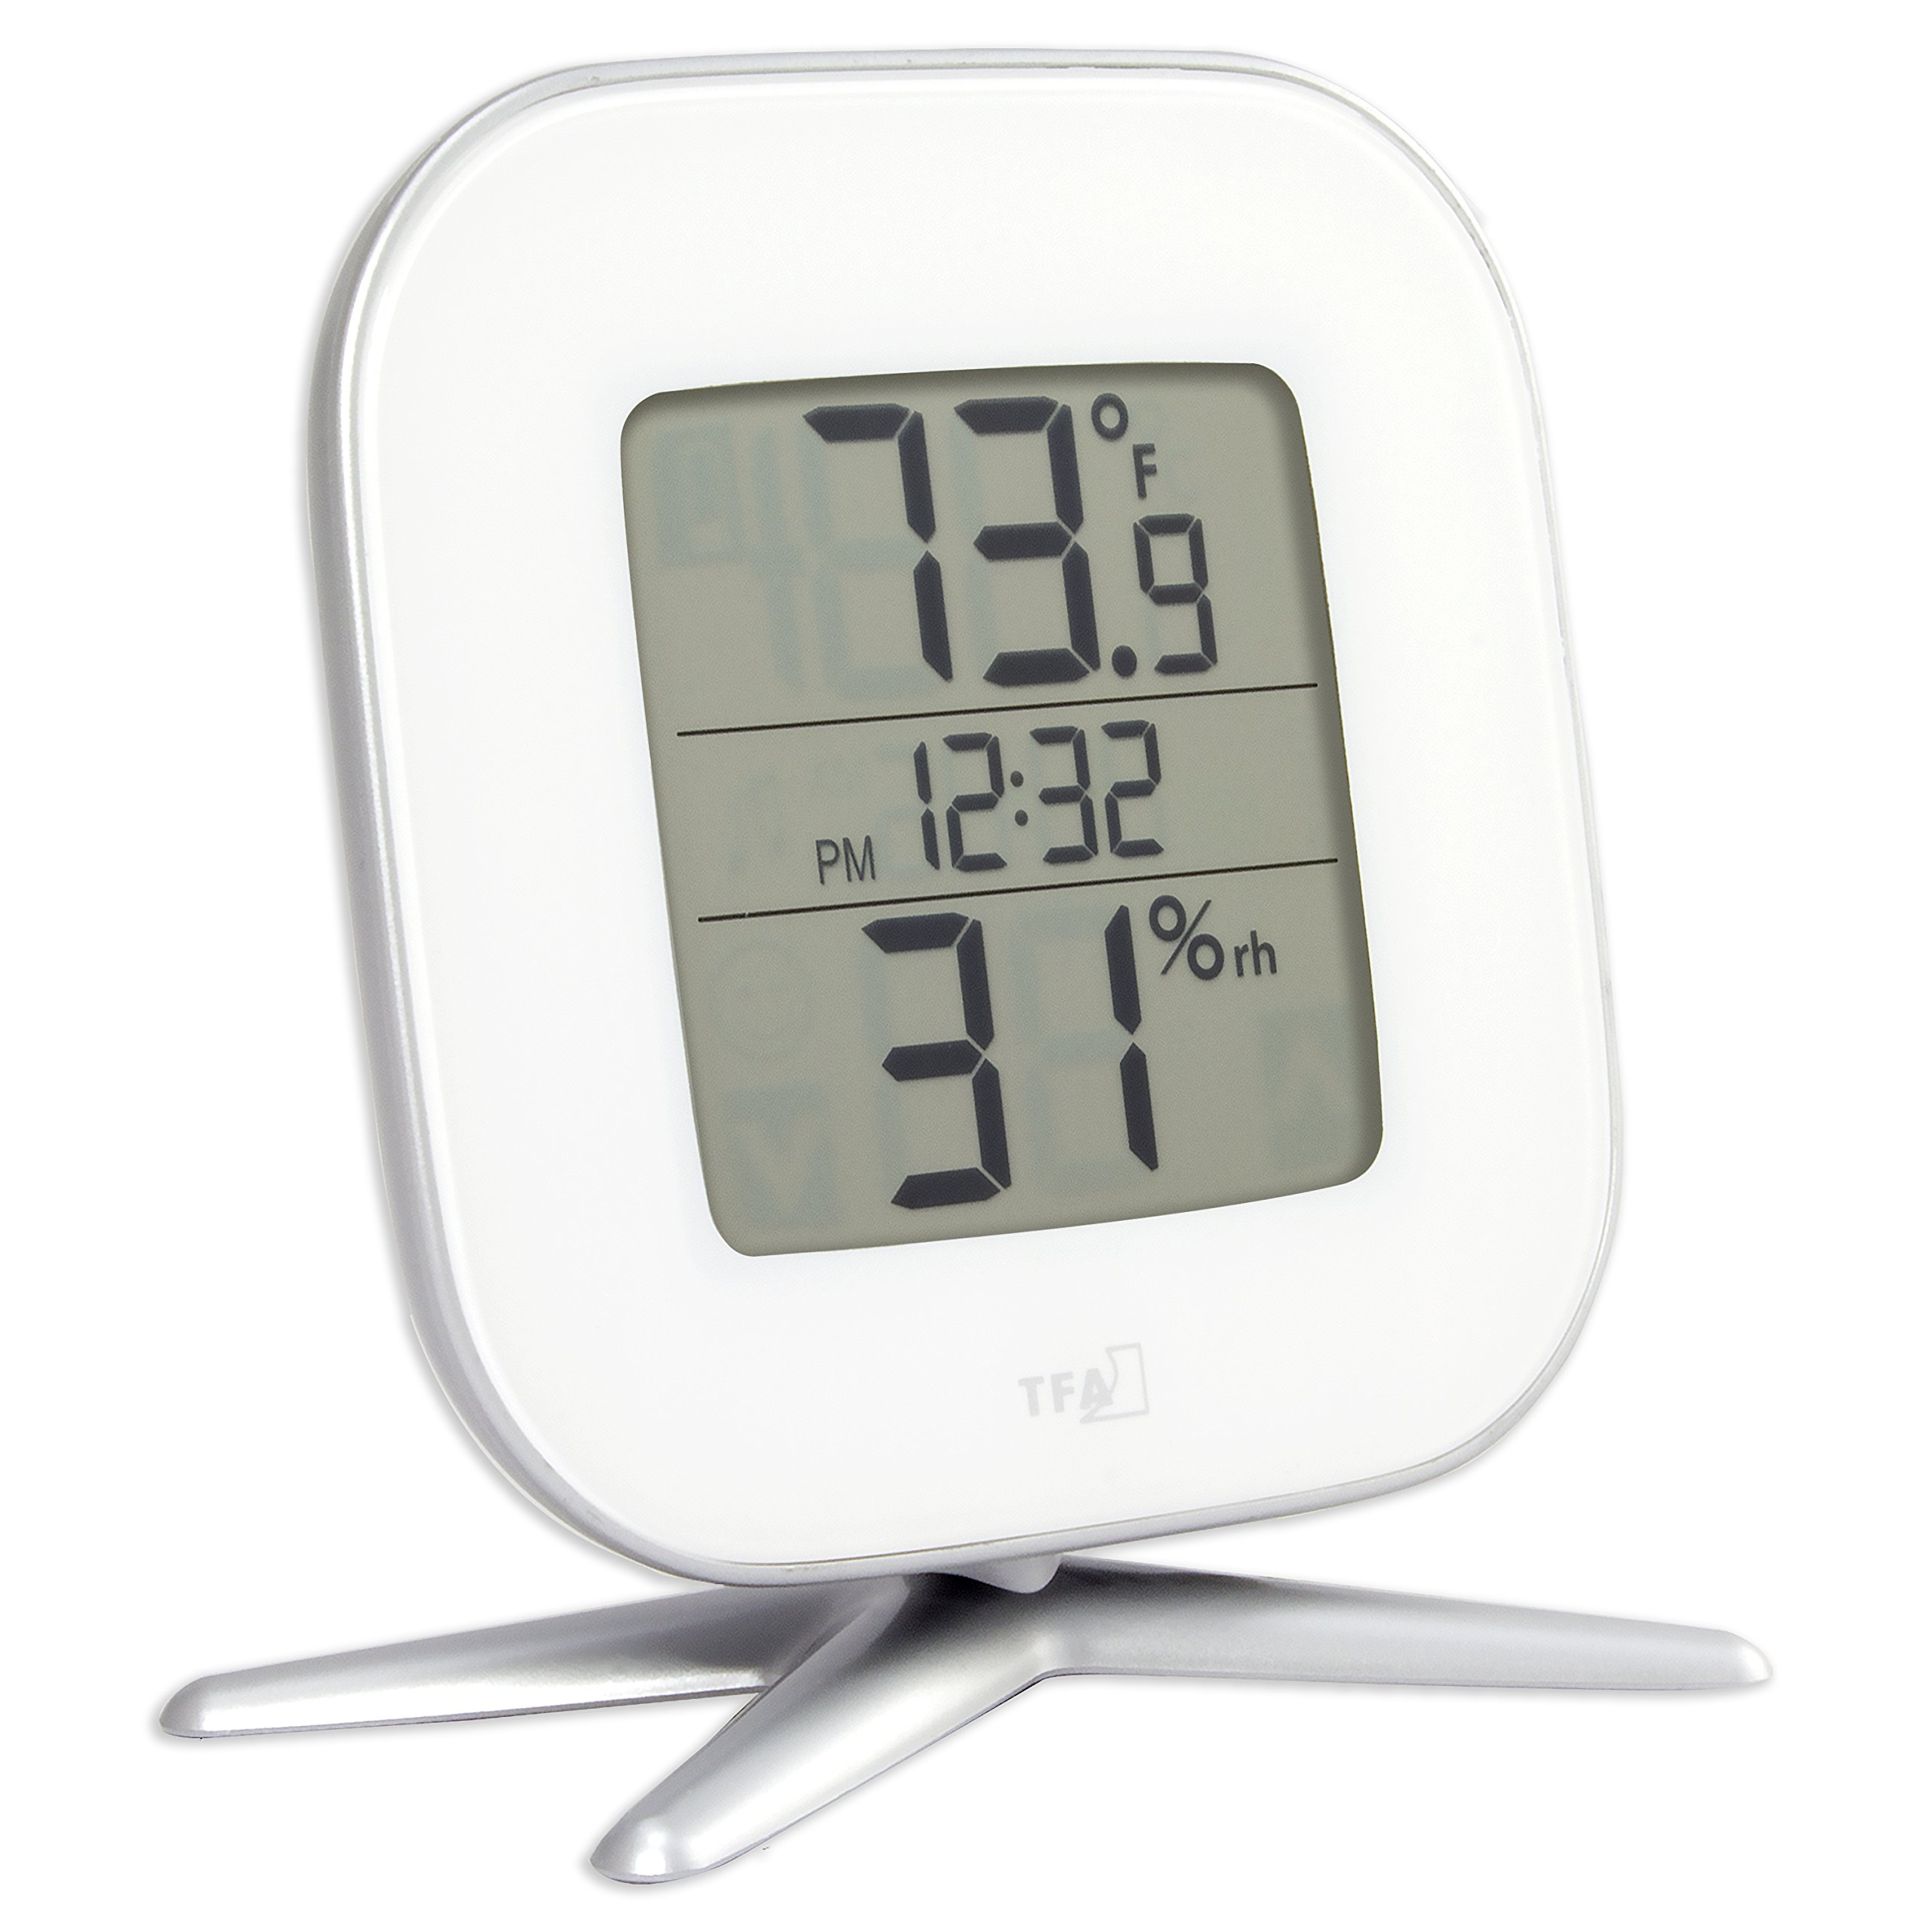 La Crosse Technology 30.5030.02 Tivi Digital Thermo-Hygrometer with Time, White